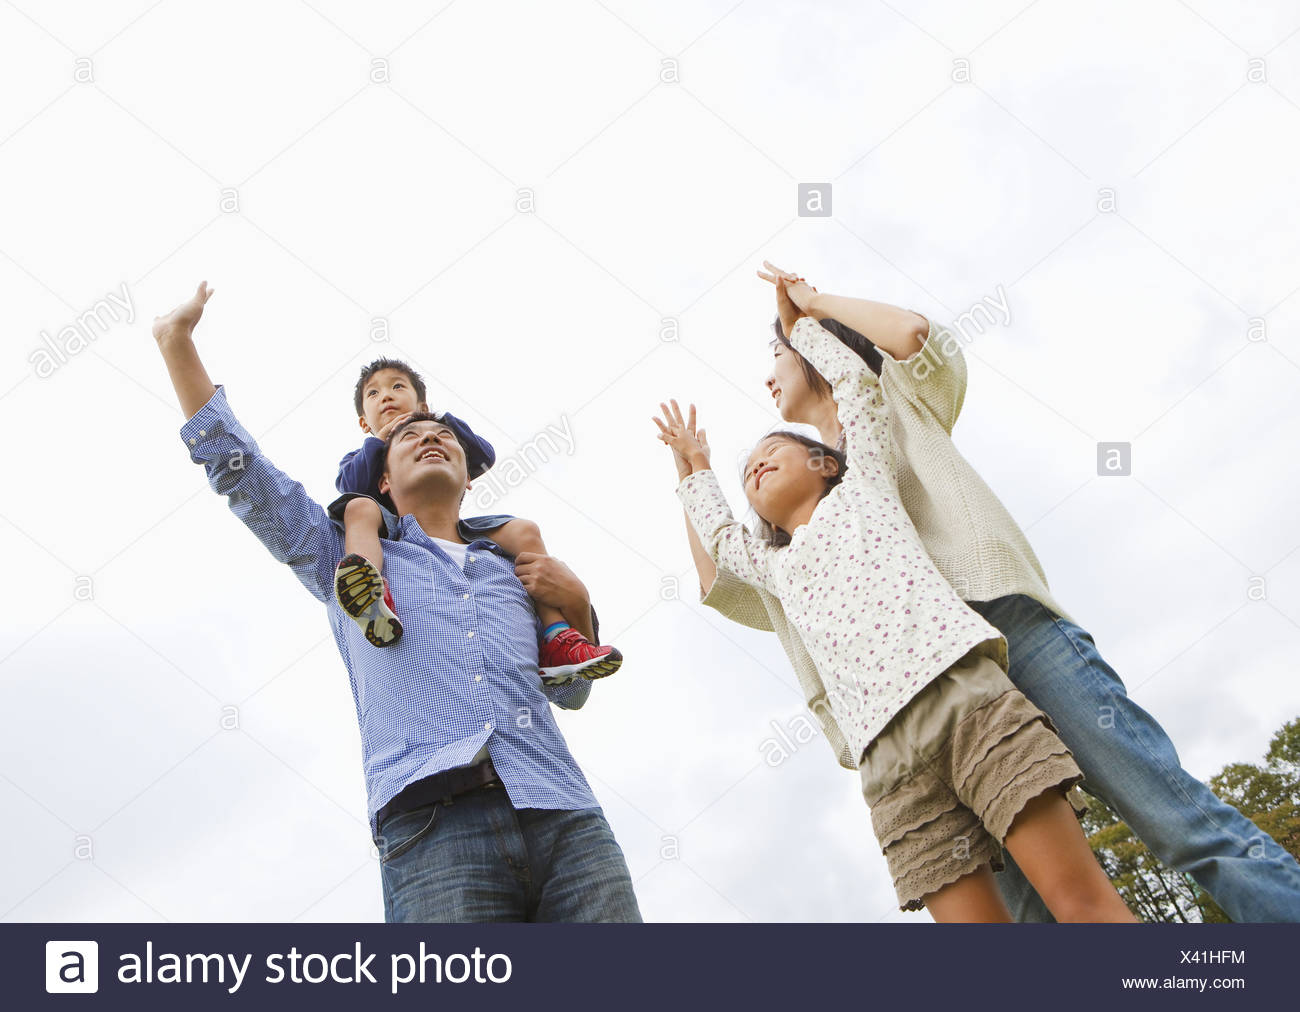 Family reaching for the sky - Stock Image